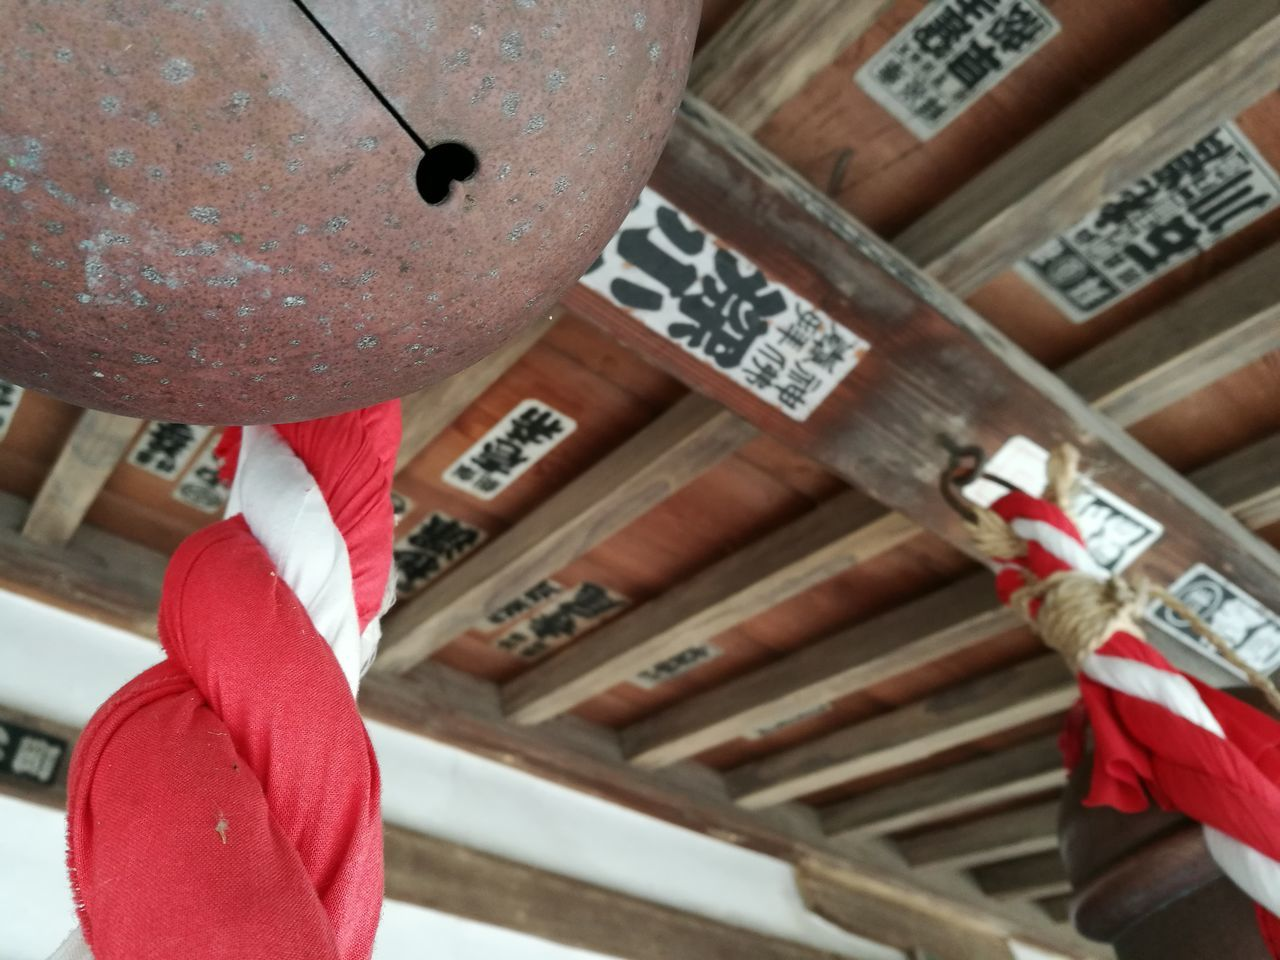 Hanging Tradition Celebration No People Cultures Holiday - Event Low Angle View Day Outdoors Close-up Architecture Wabi-sabi Japan Red Bell Temple - Building Heart